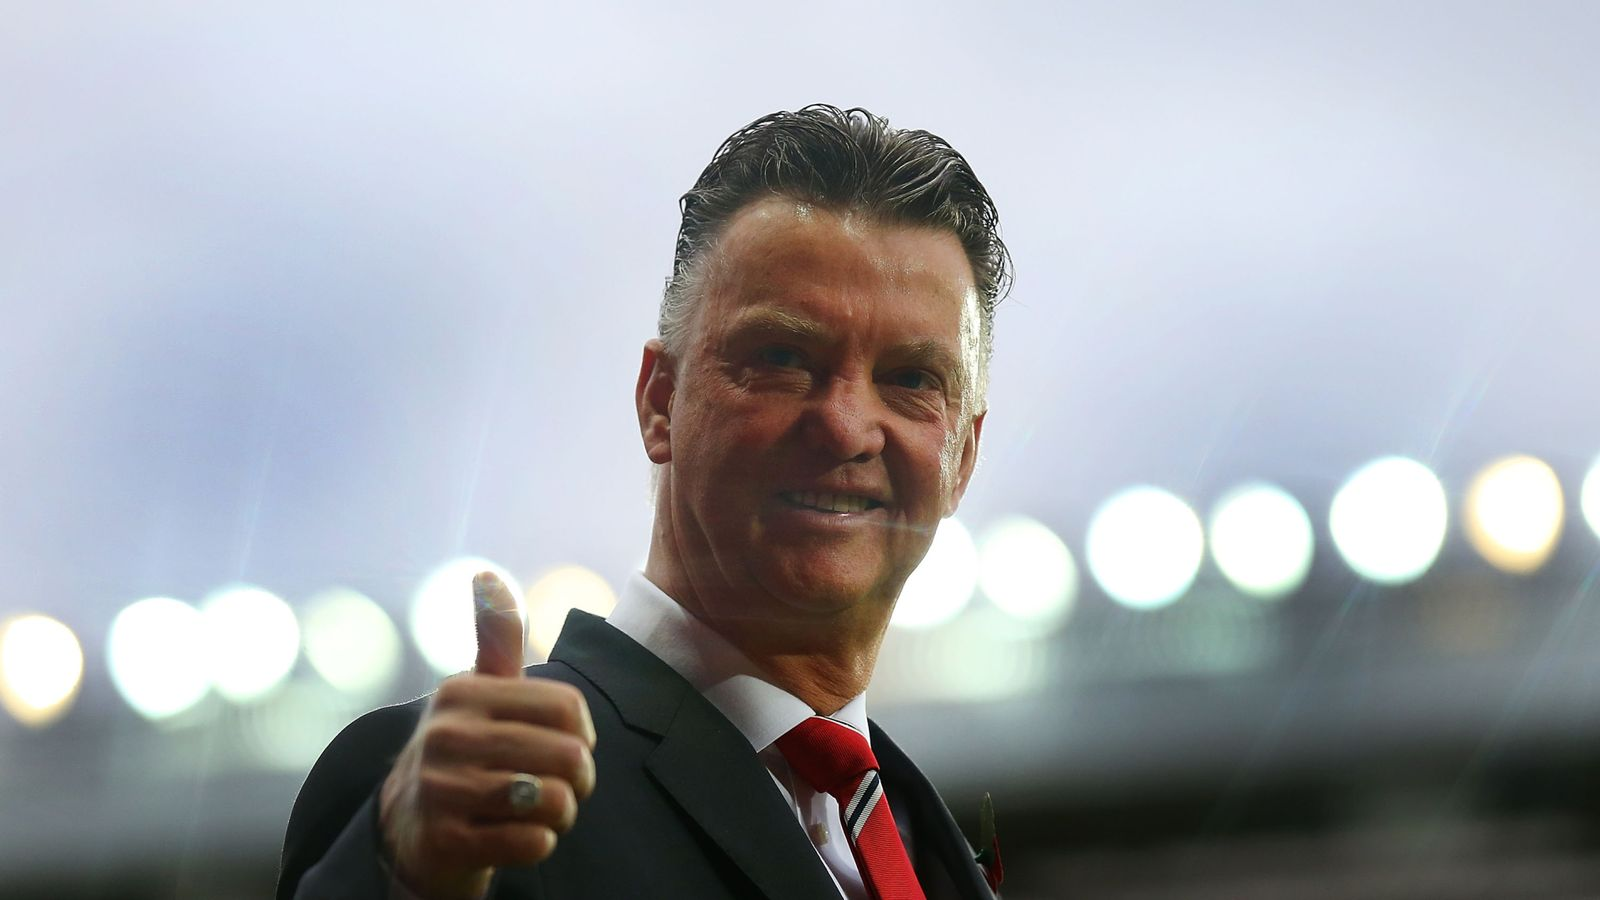 Louis Van Gaal Should Not Be Sacked By Manchester United